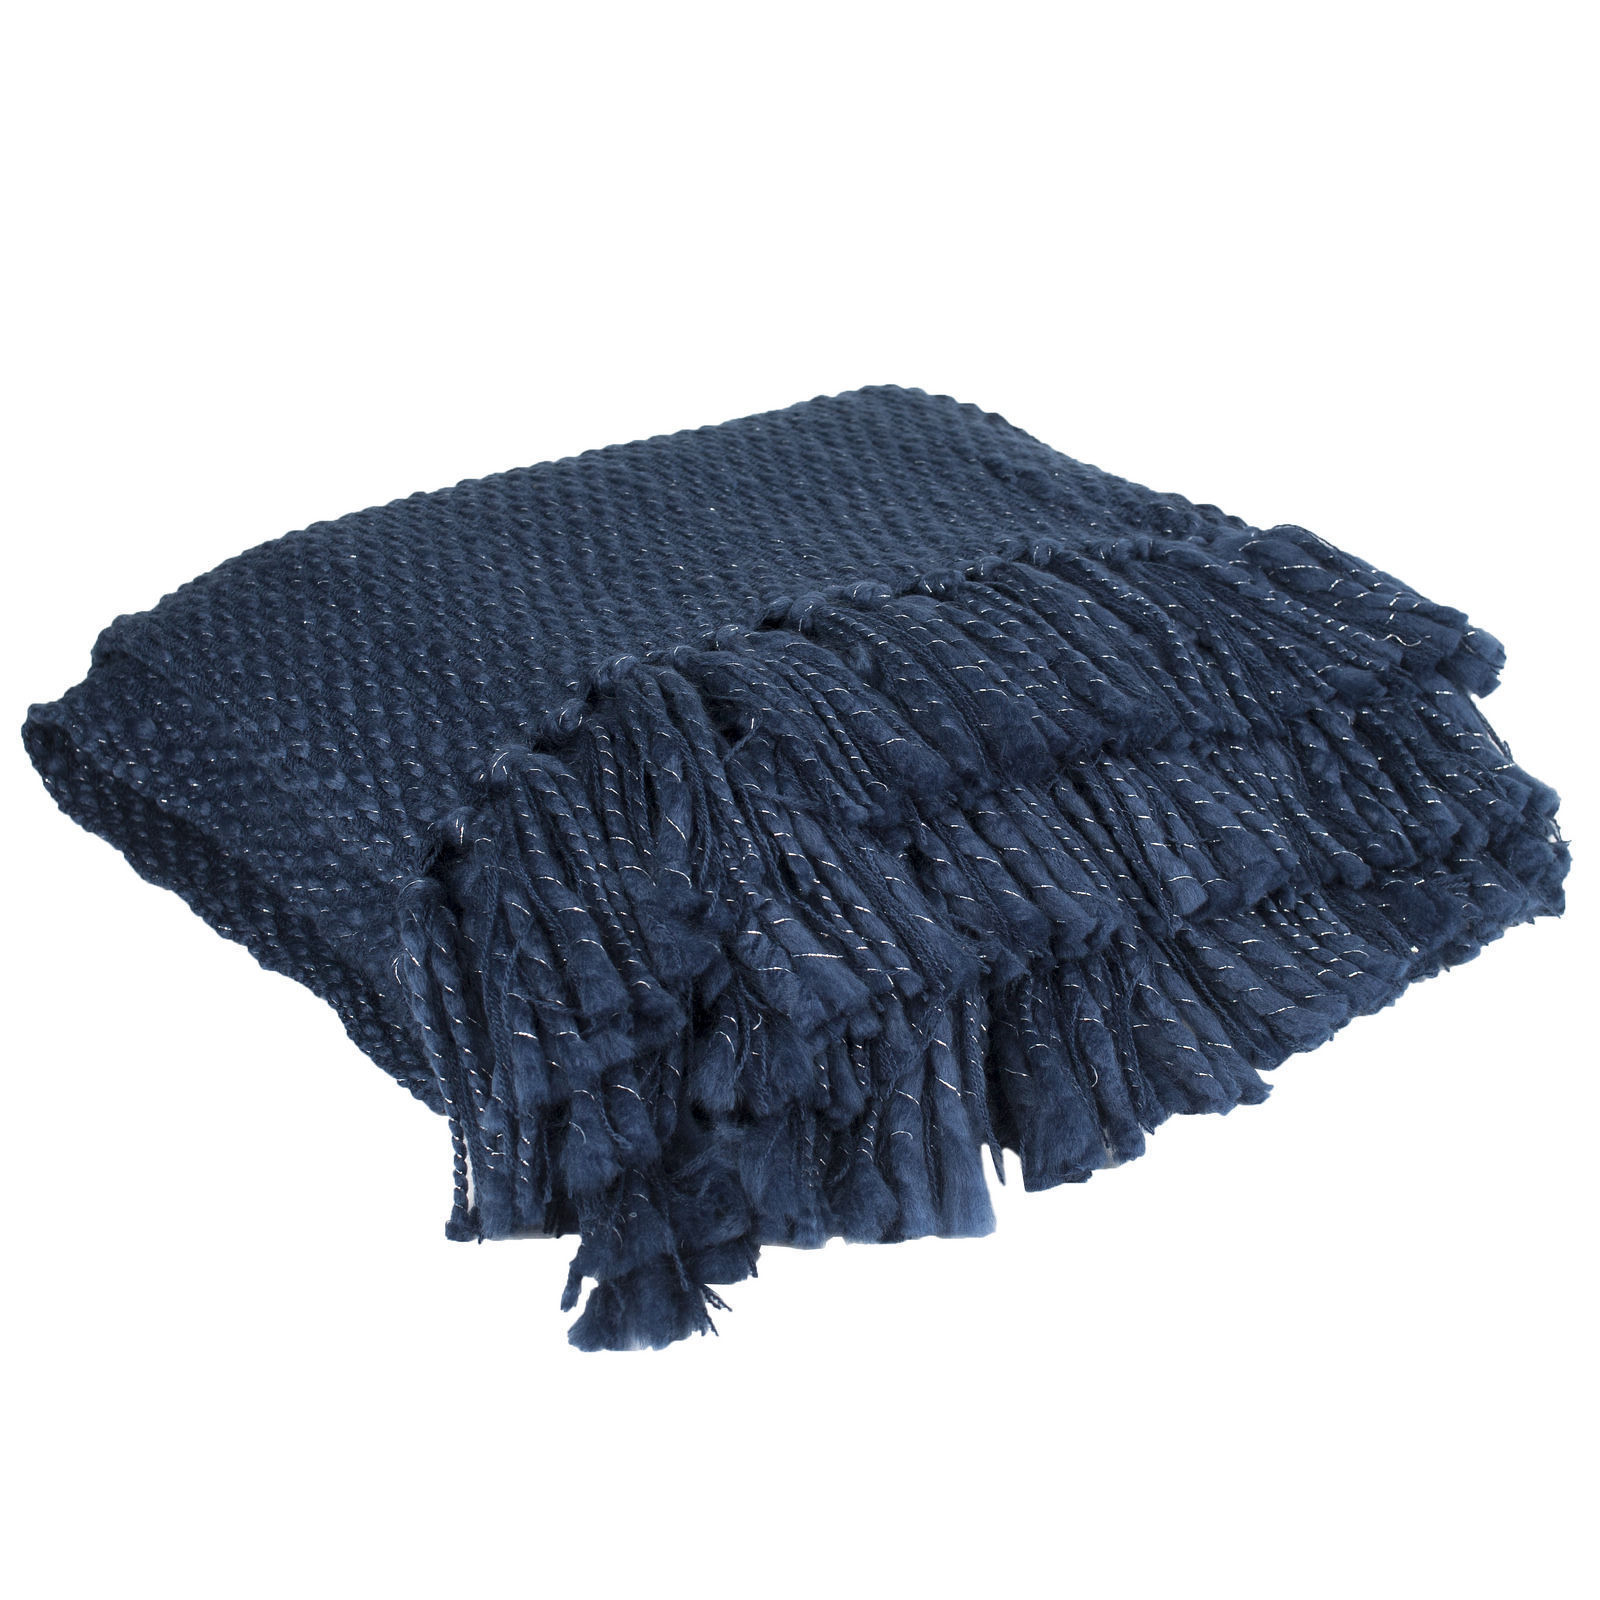 Catalina Blue Knit Throw Blanket